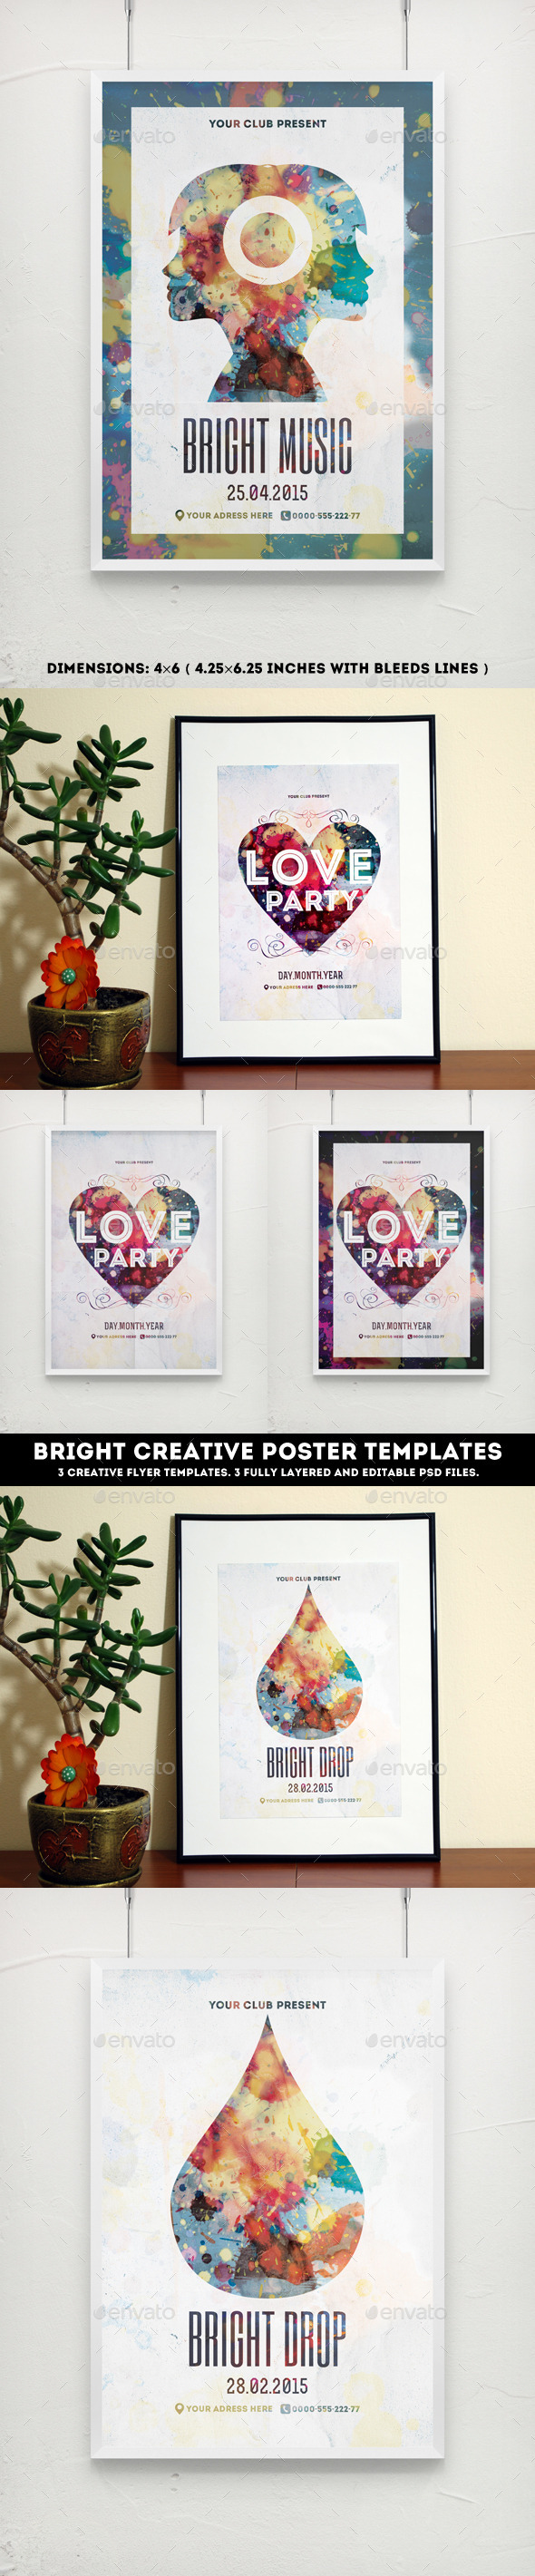 GraphicRiver Bright Creative Poster Templates 10810588